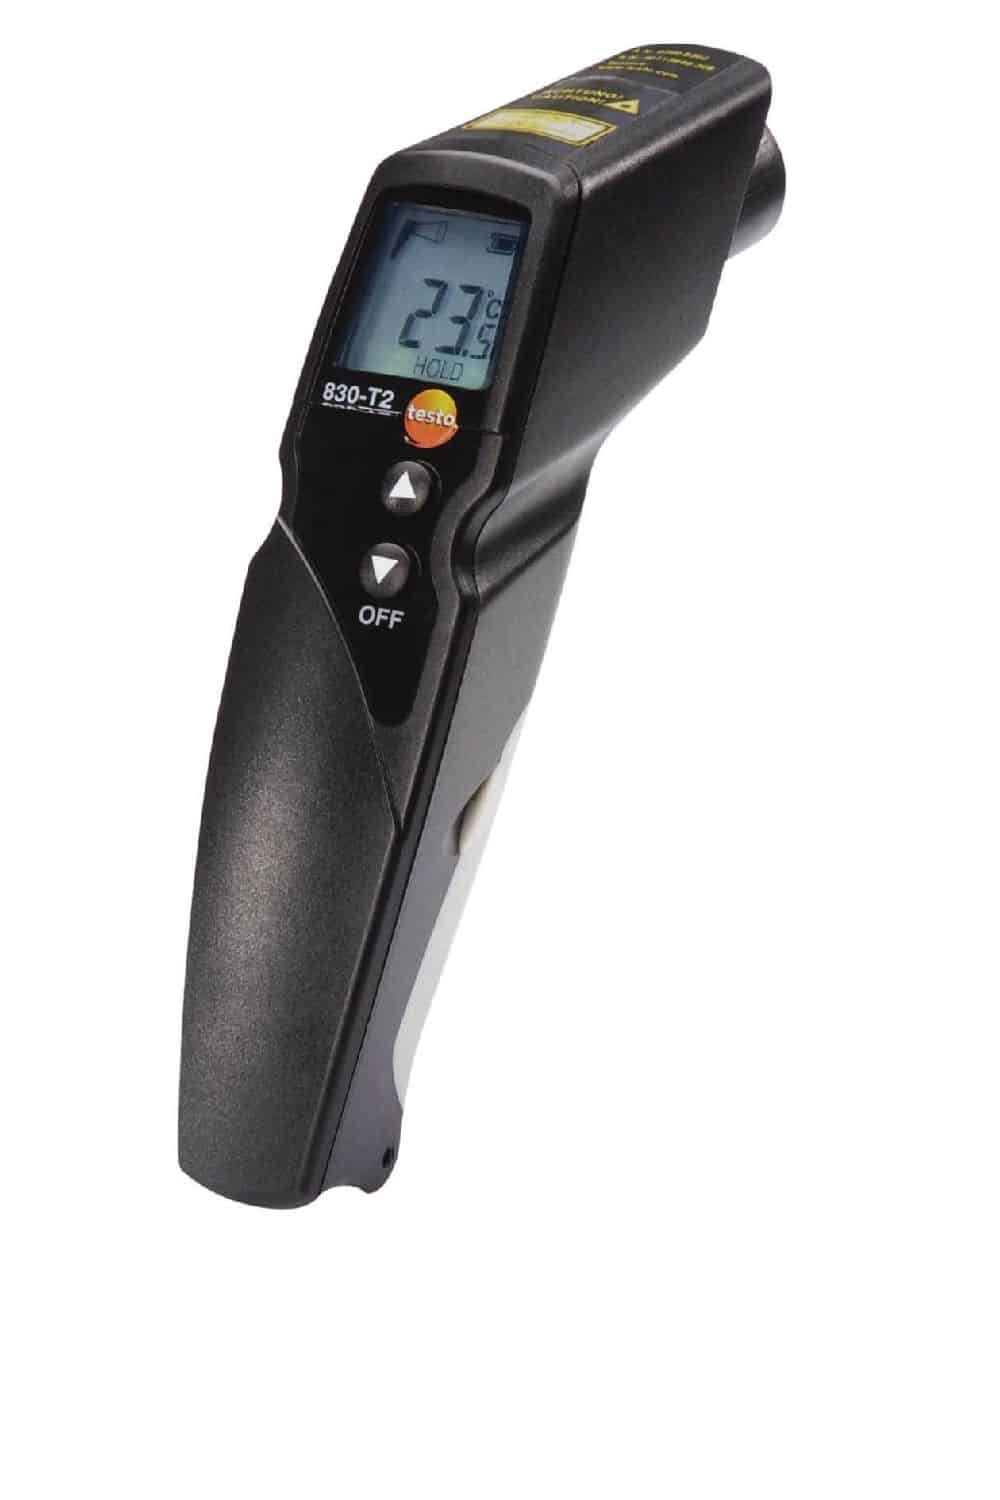 TESTO 830-T2 Infrared Thermometer in UAE